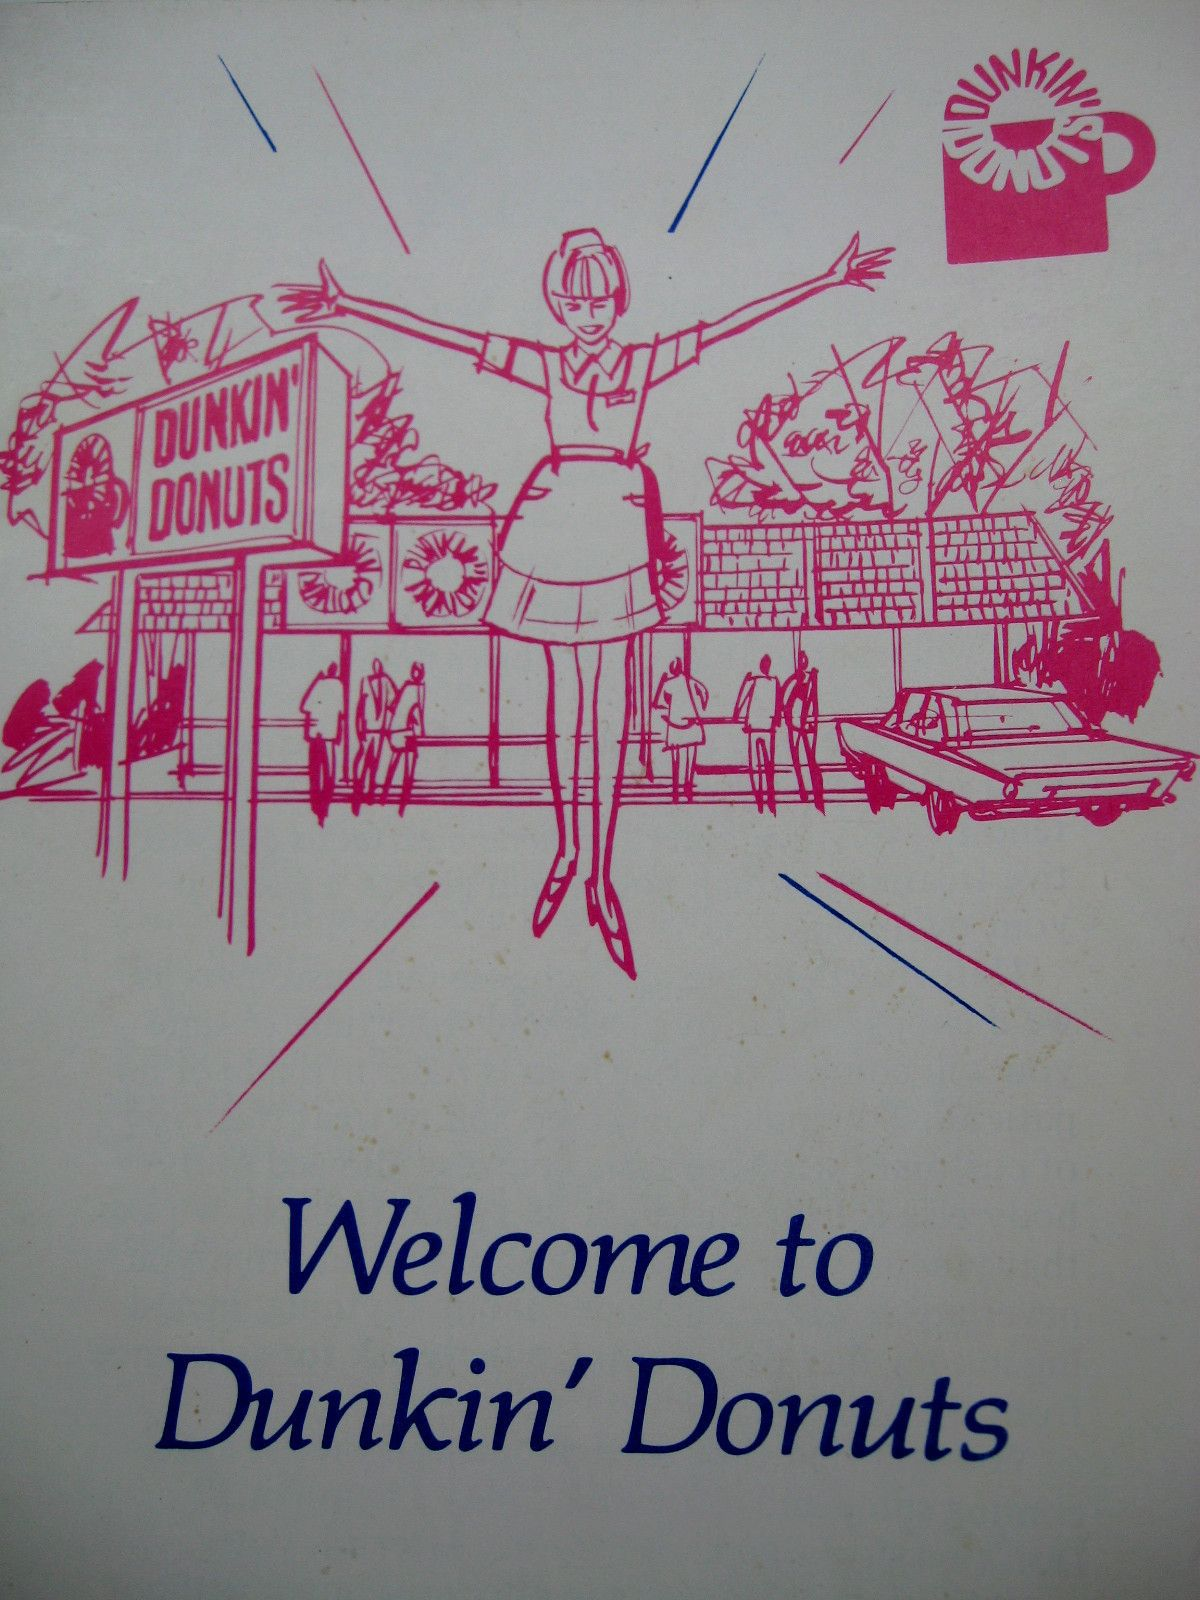 Vintage Dunkin Donuts Employee Training Manual Donut Shop, Dunkin Donuts,  Manual, Vintage Advertisements